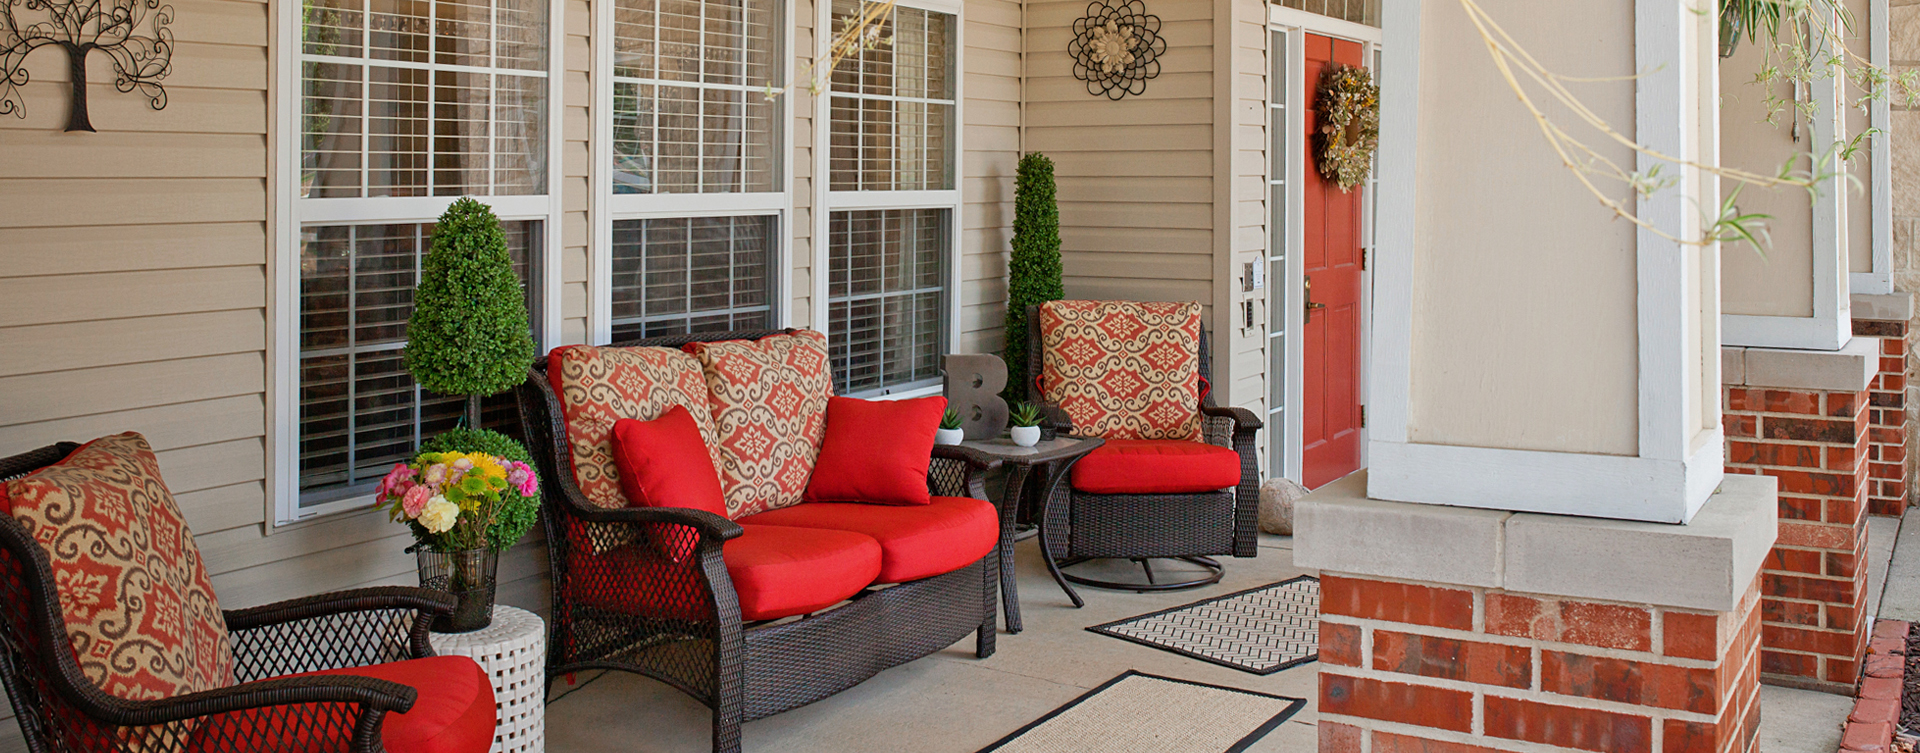 Enjoy conversations with friends on the porch at Bickford of Cedar Falls